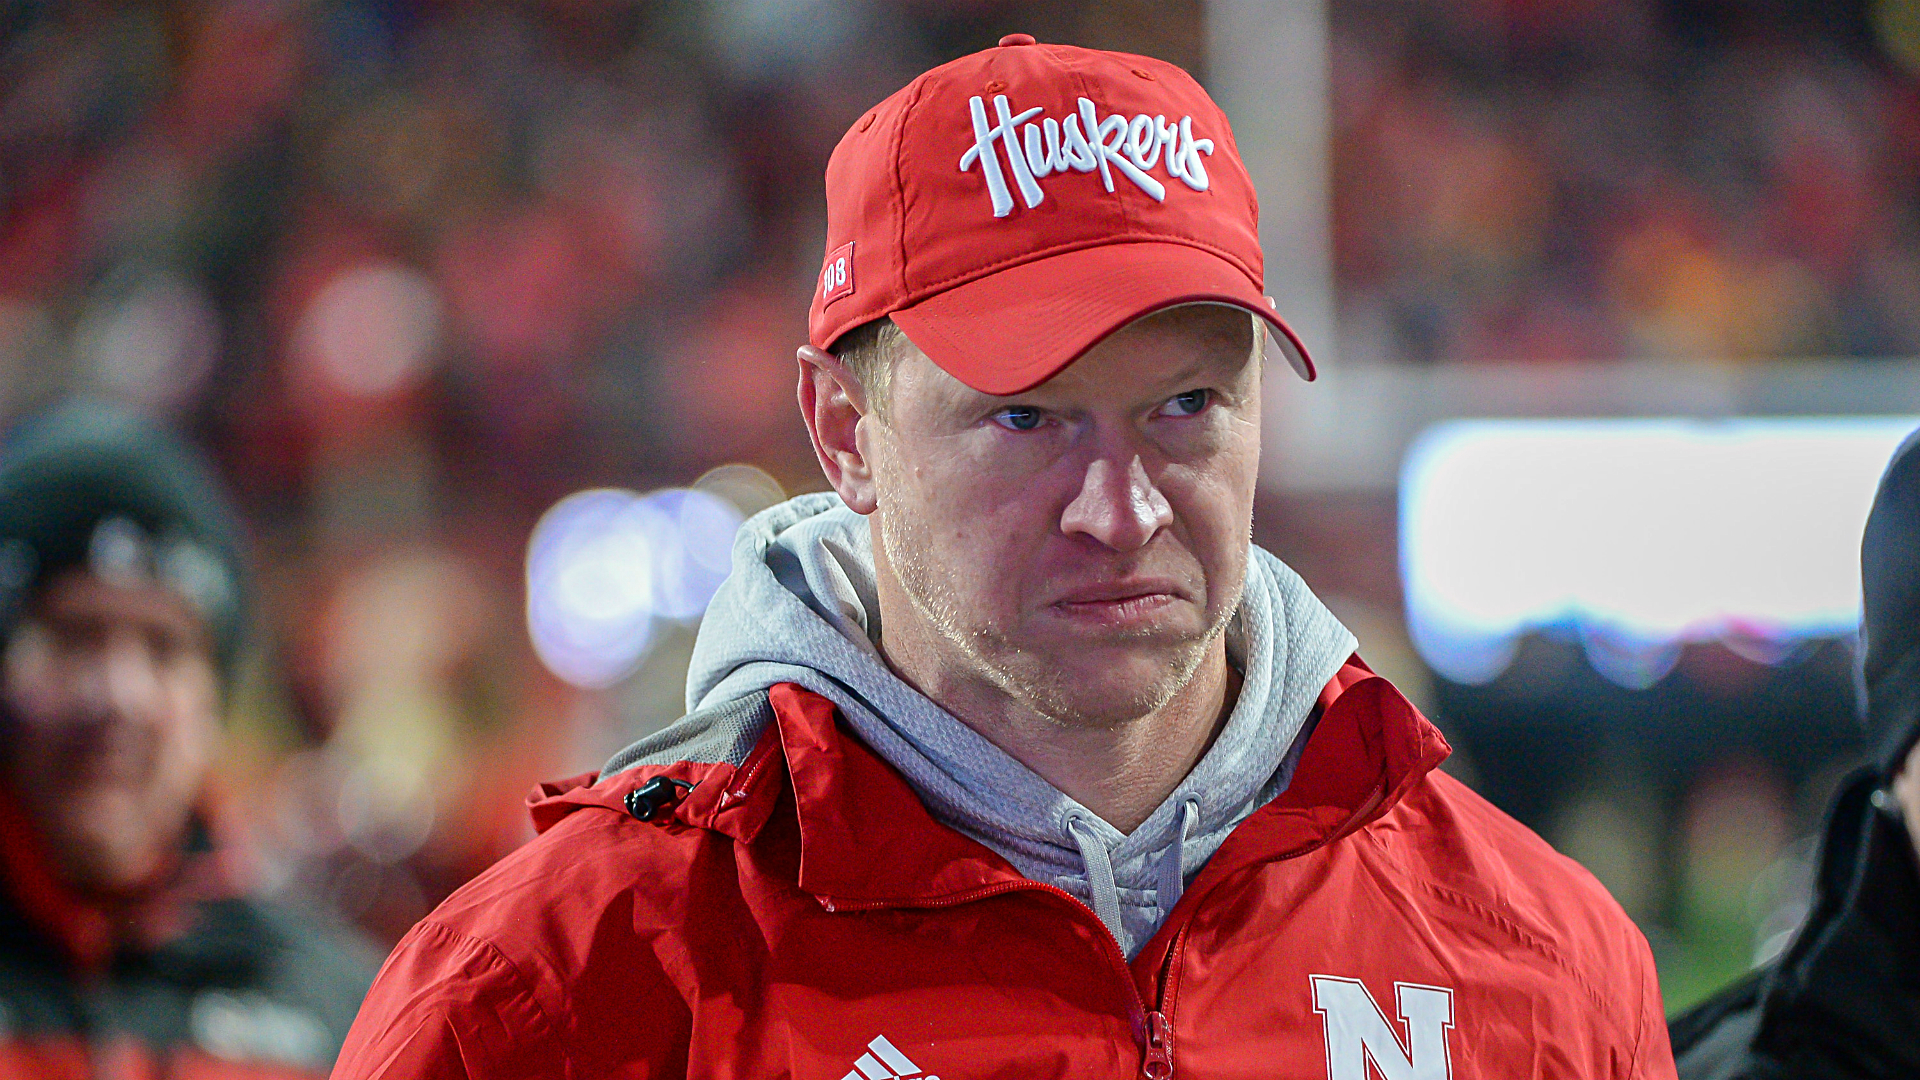 Nebraska wanted football back, and the Big Ten gave it to the Huskers with brutal schedule